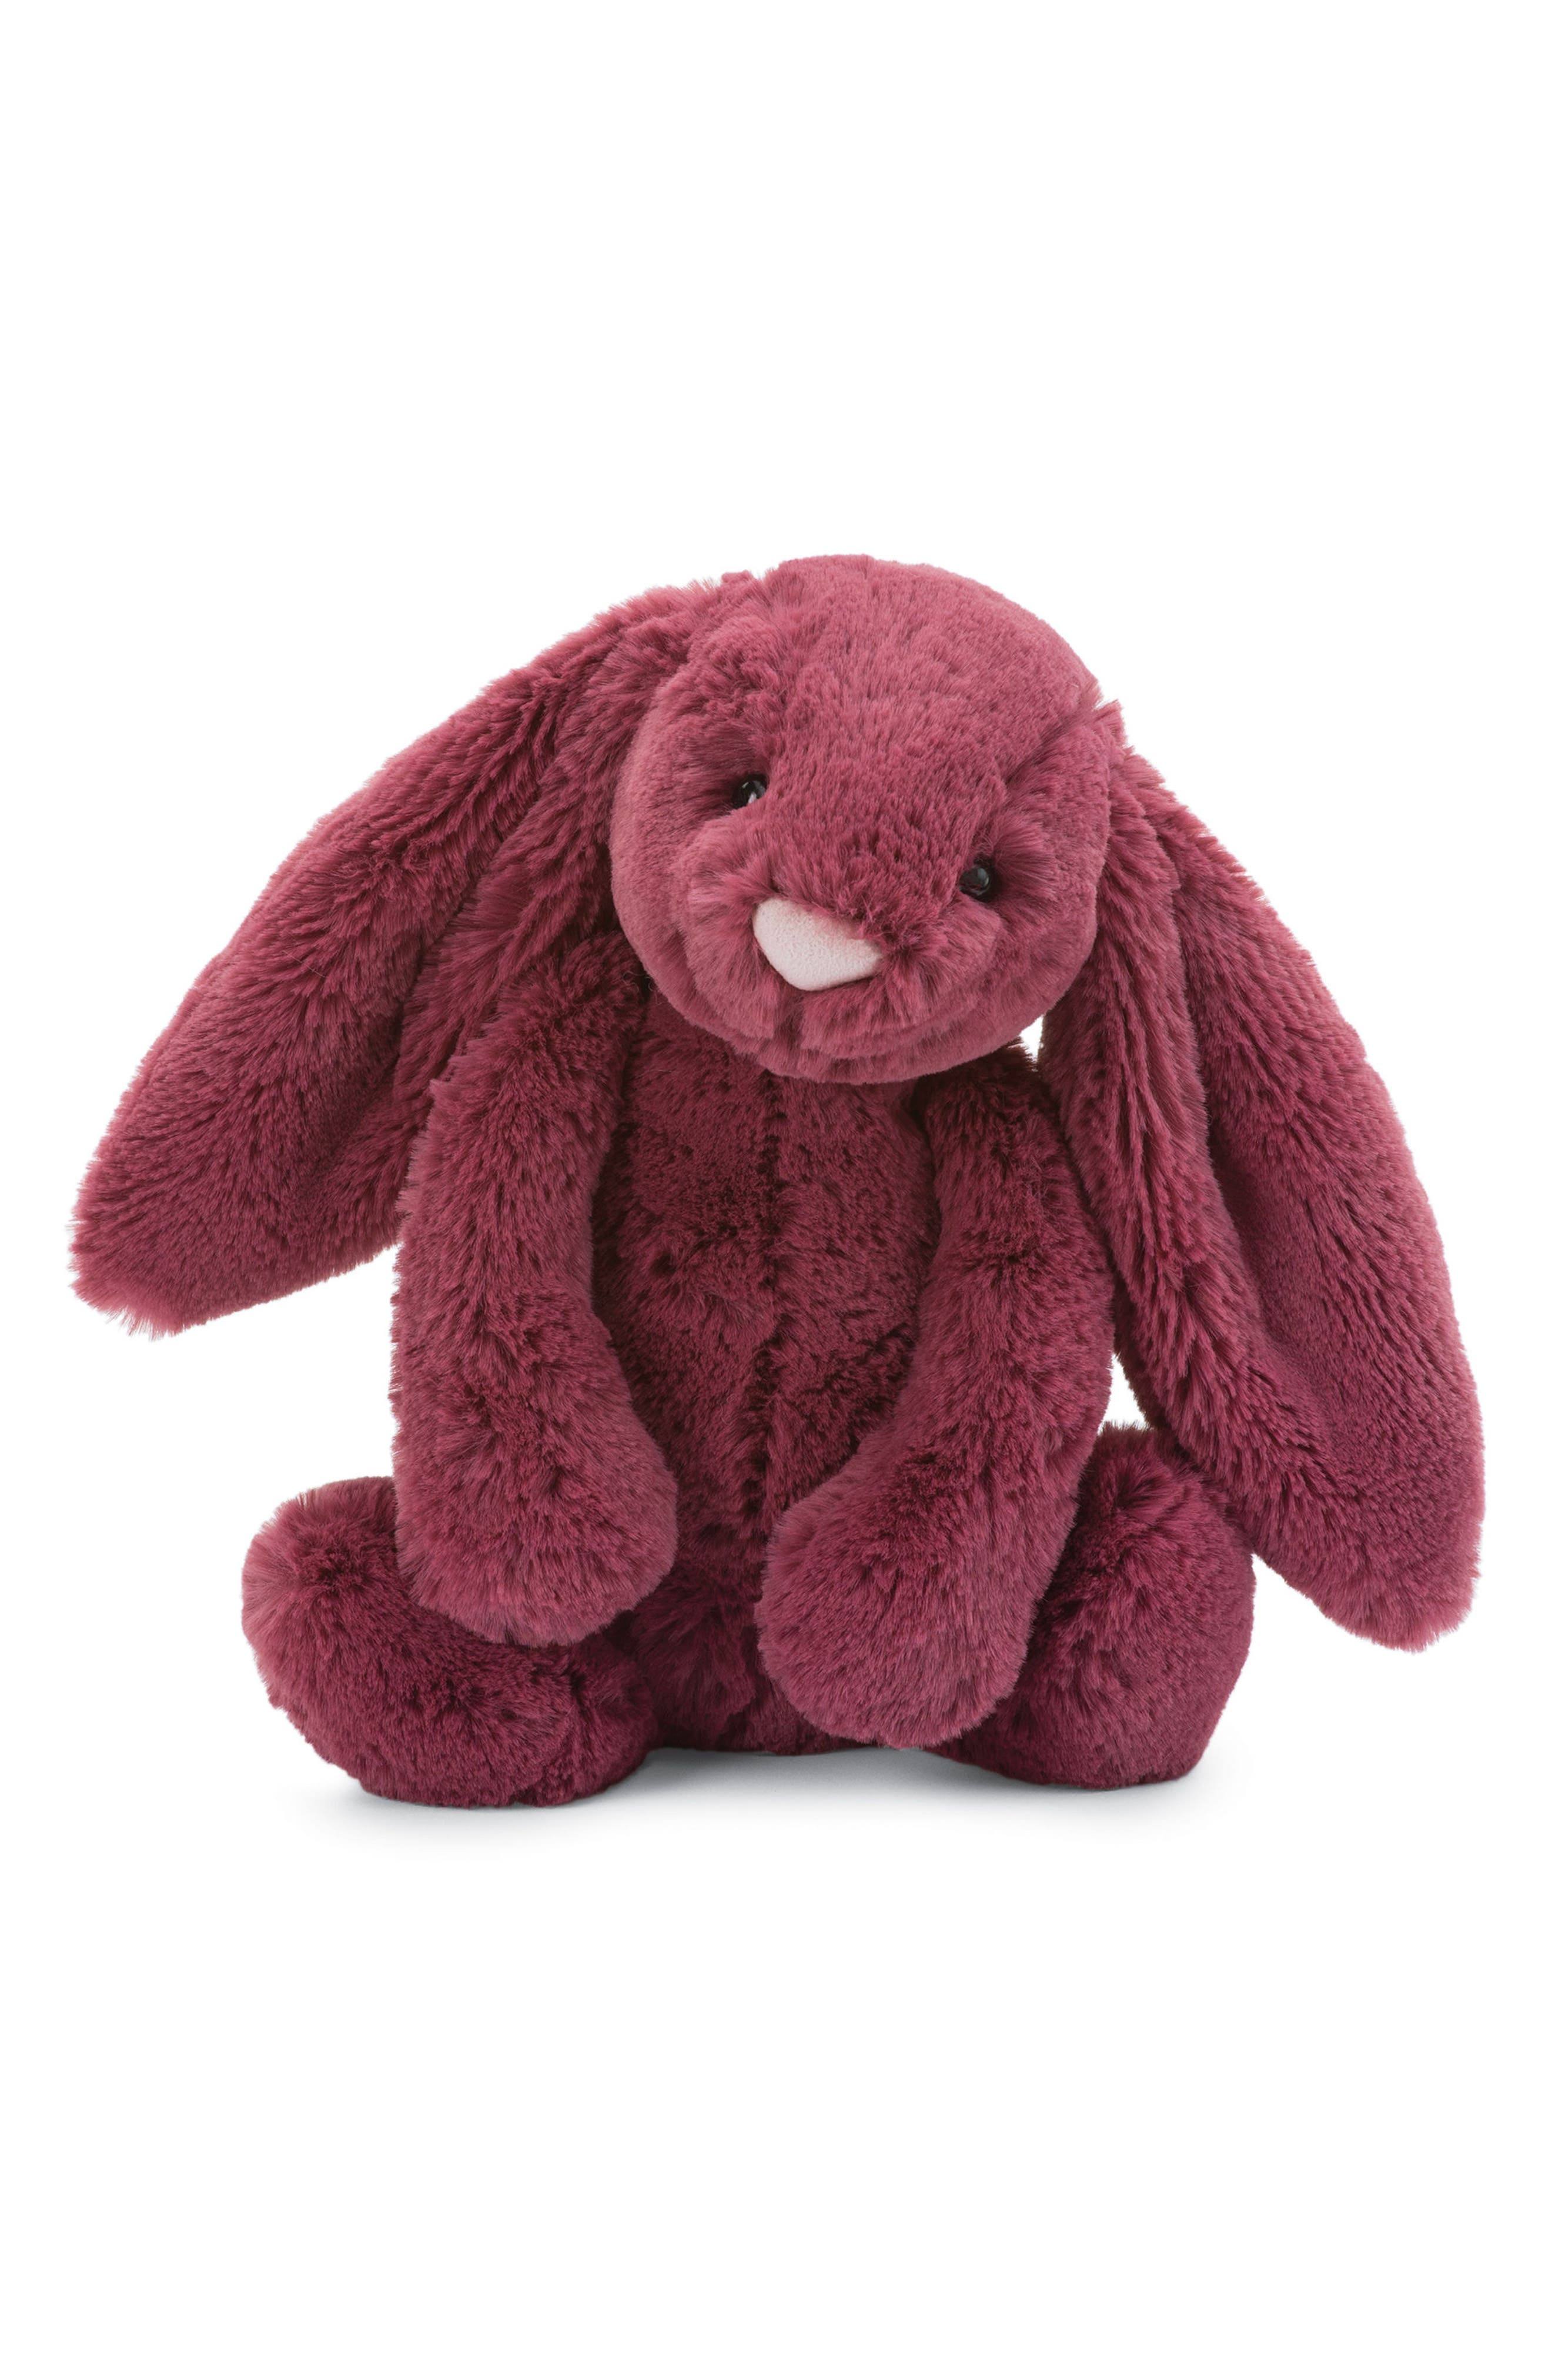 Bashful Berry Bunny Stuffed Animal,                         Main,                         color, Berry